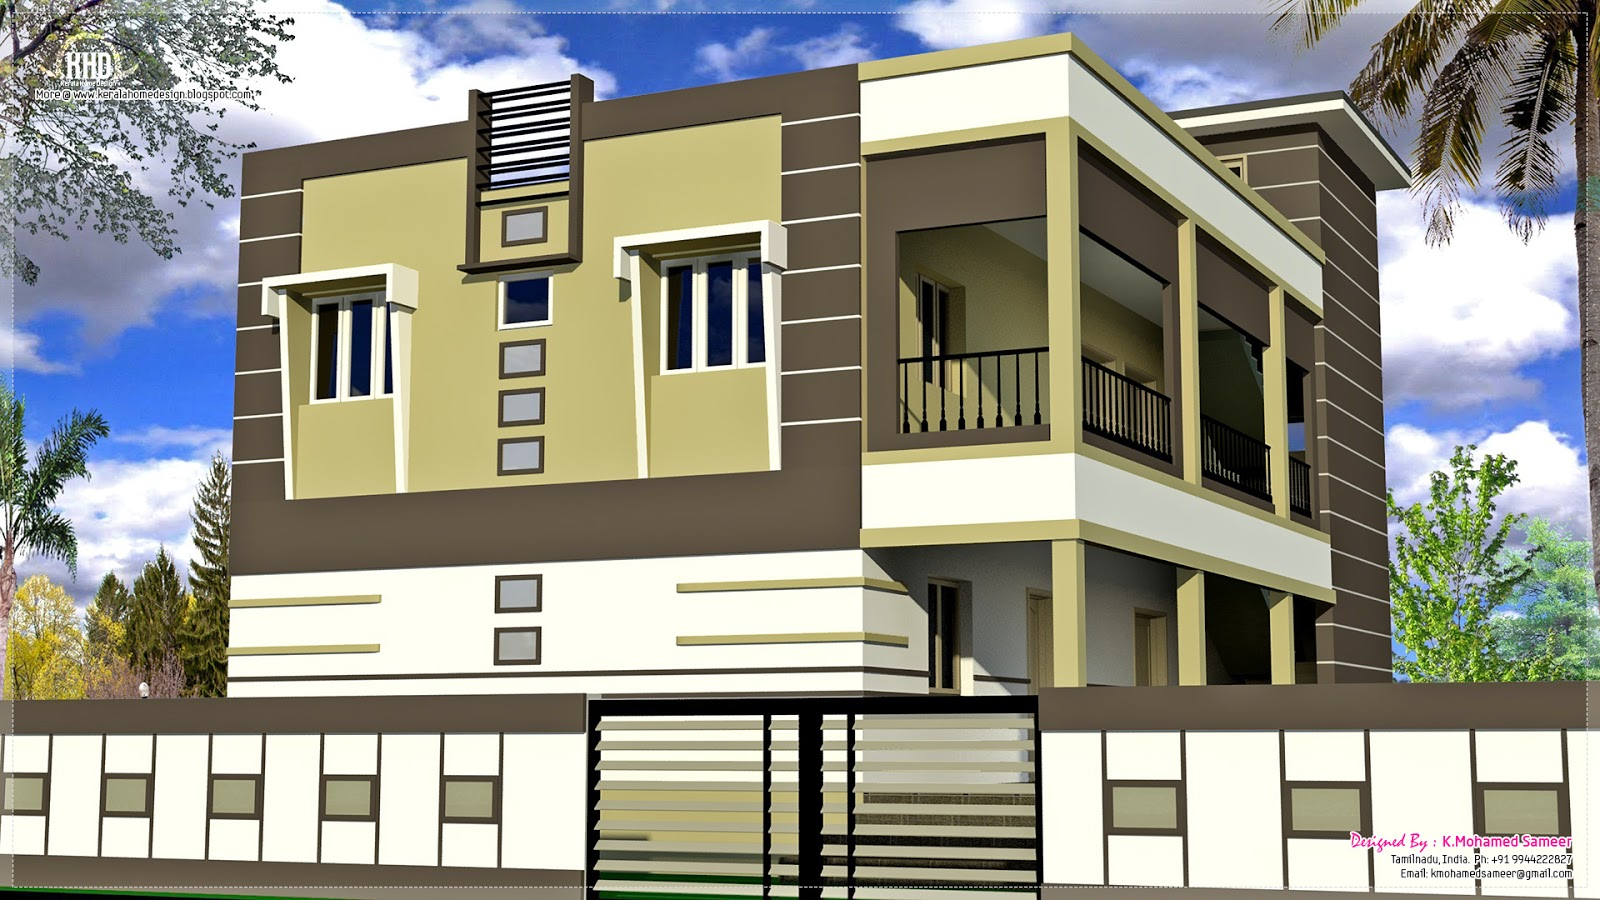 2 south indian house exterior designs style house 3d models for Home designs indian style